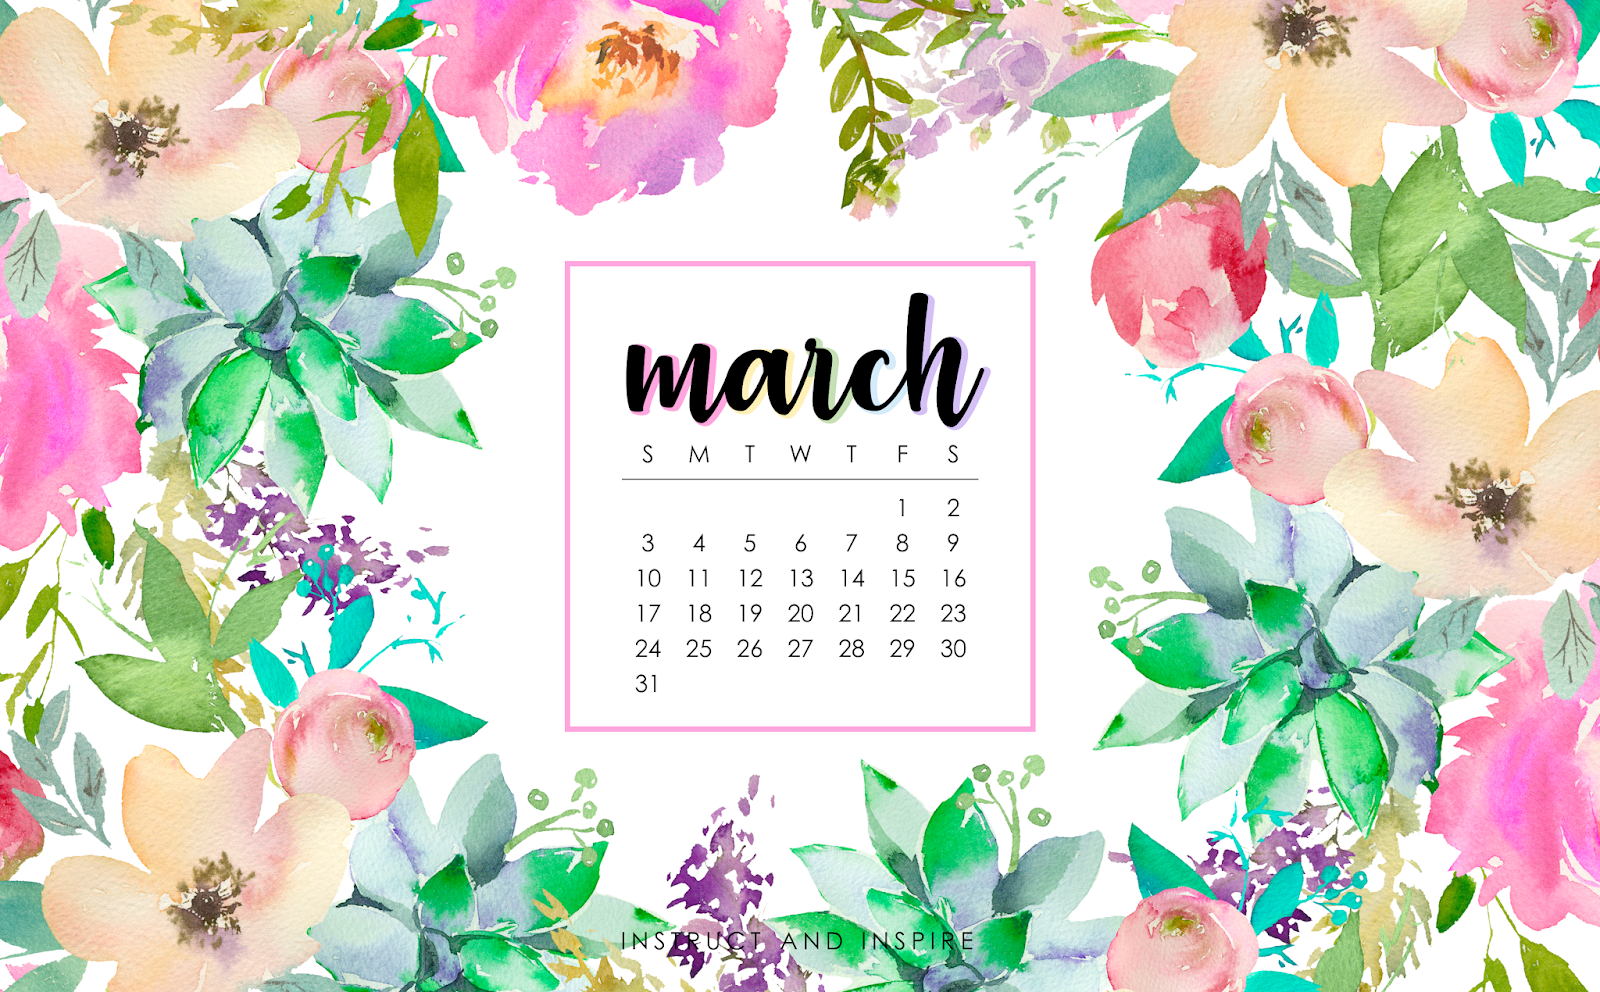 1600x992 March 2019 Wallpapers | Instruct and Inspire